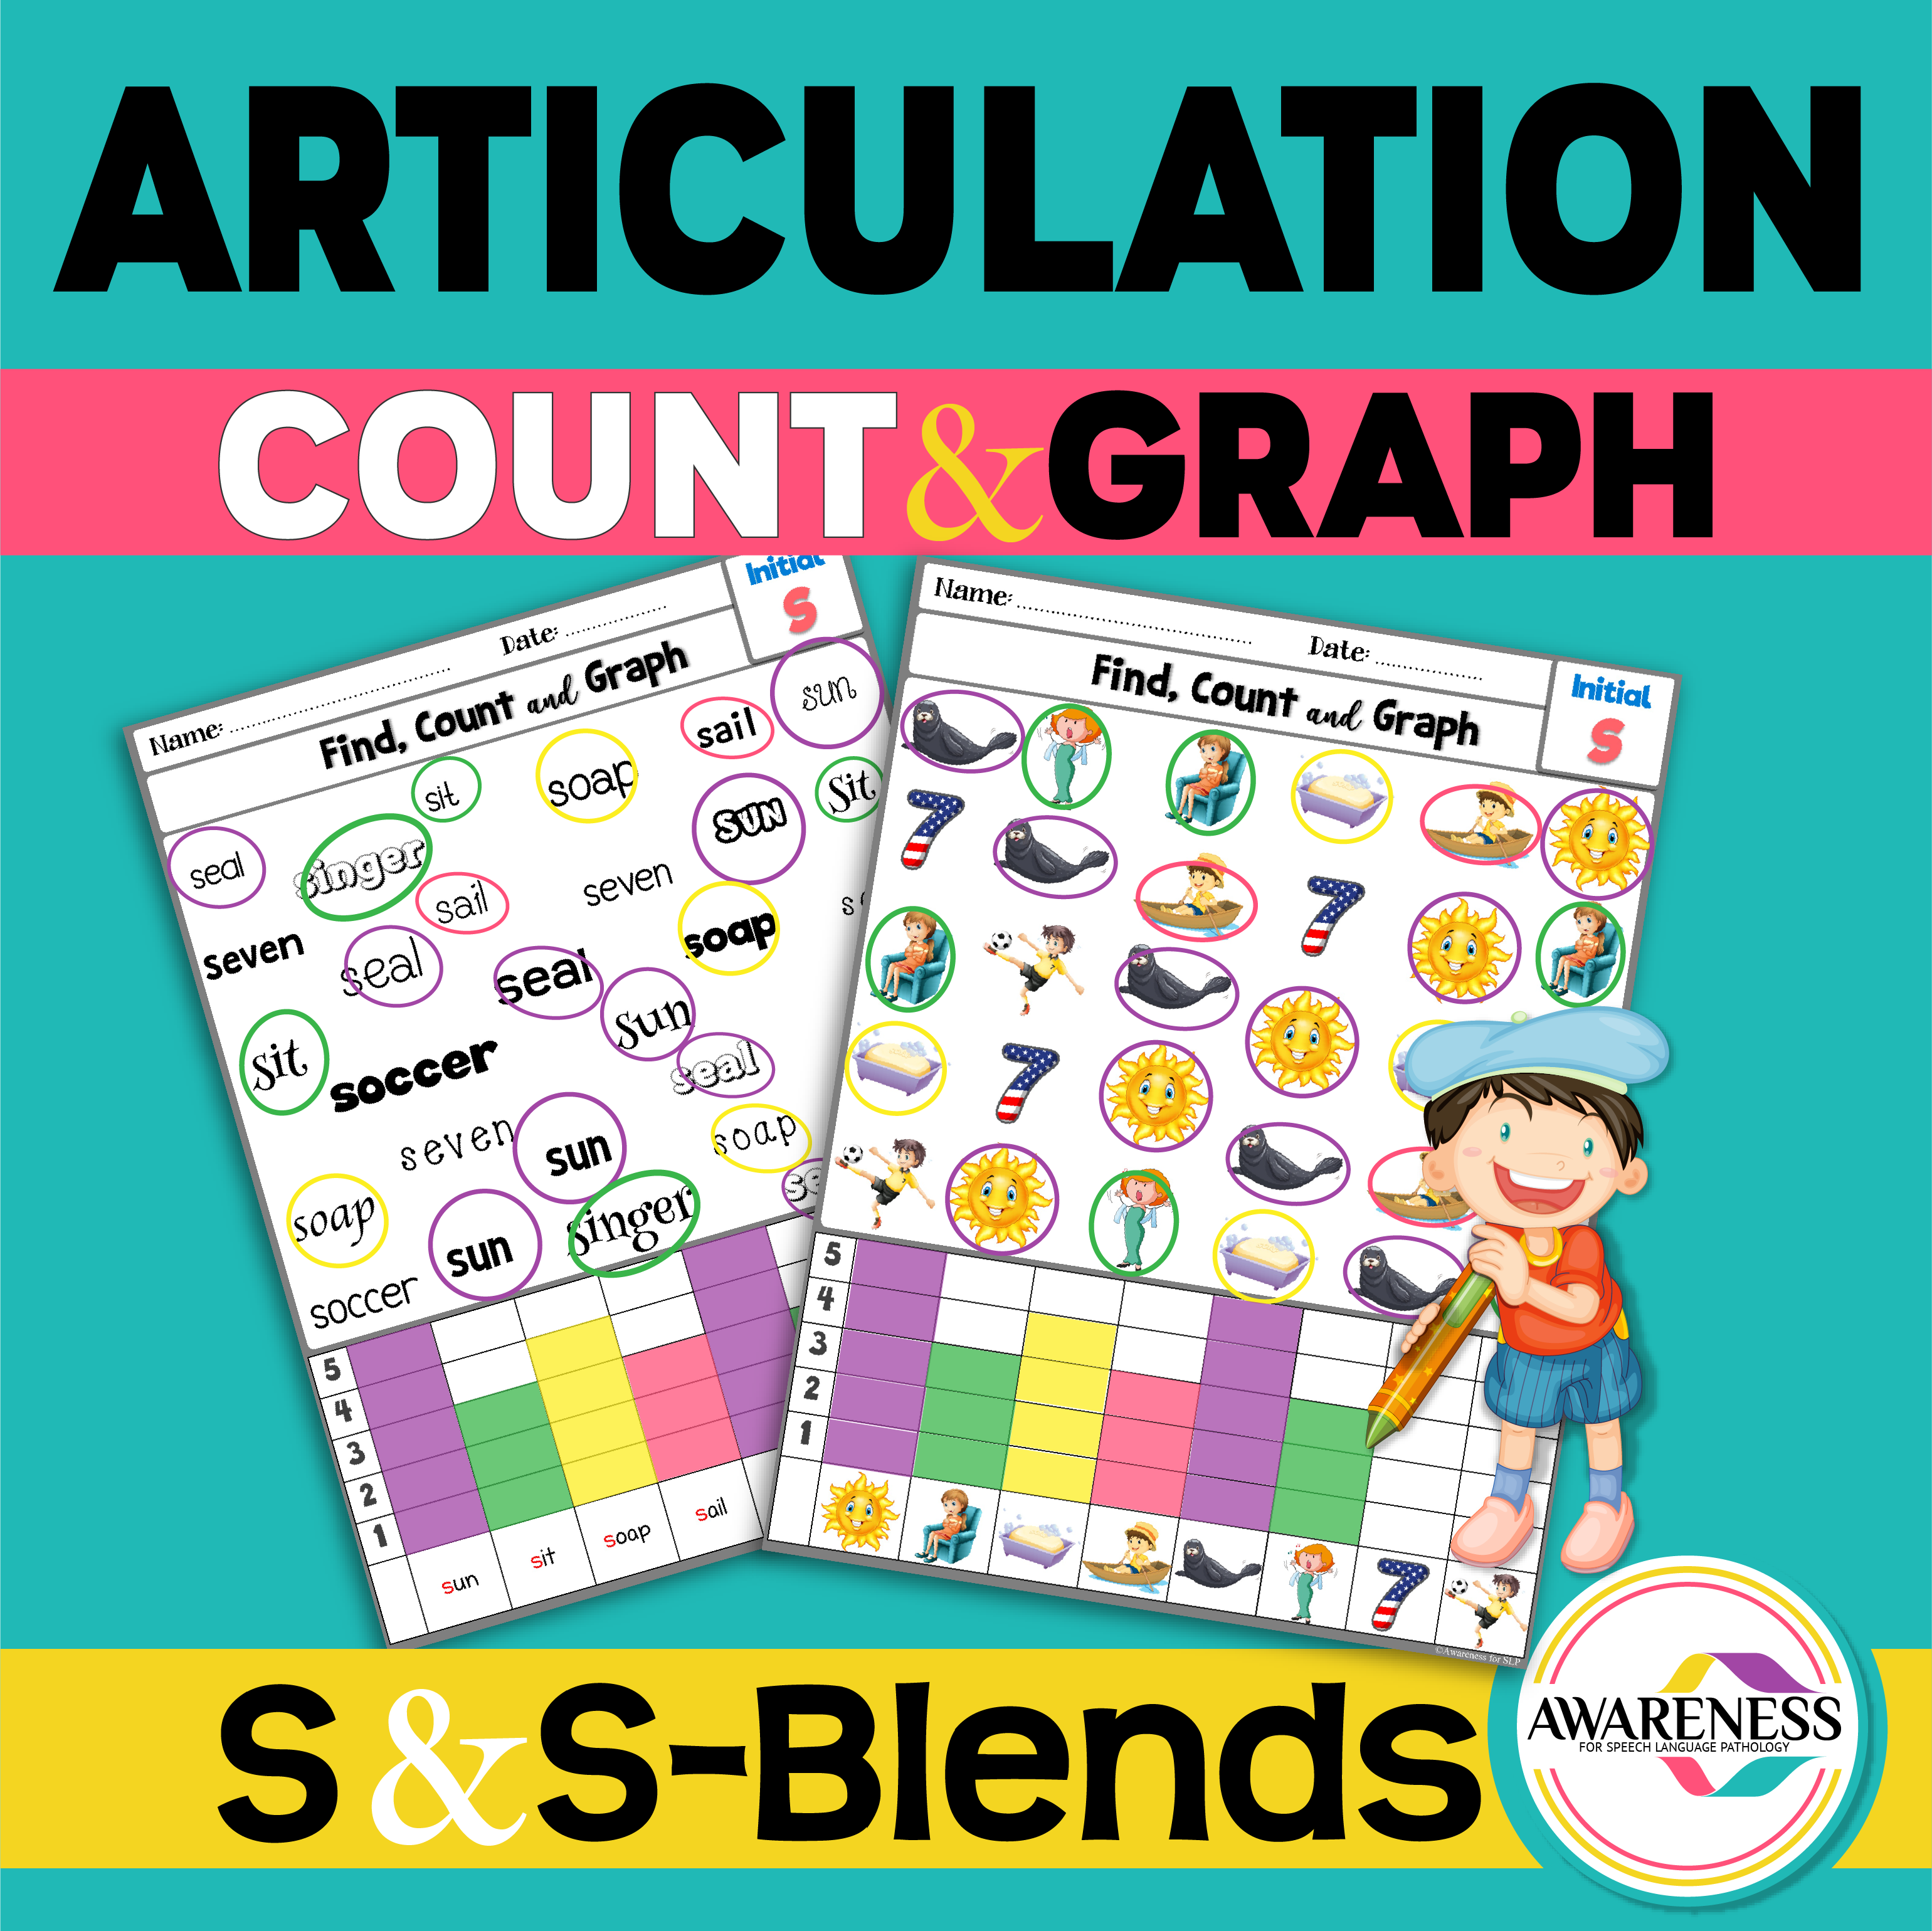 S And S Blends Articulation Count And Graph Is A No Prep